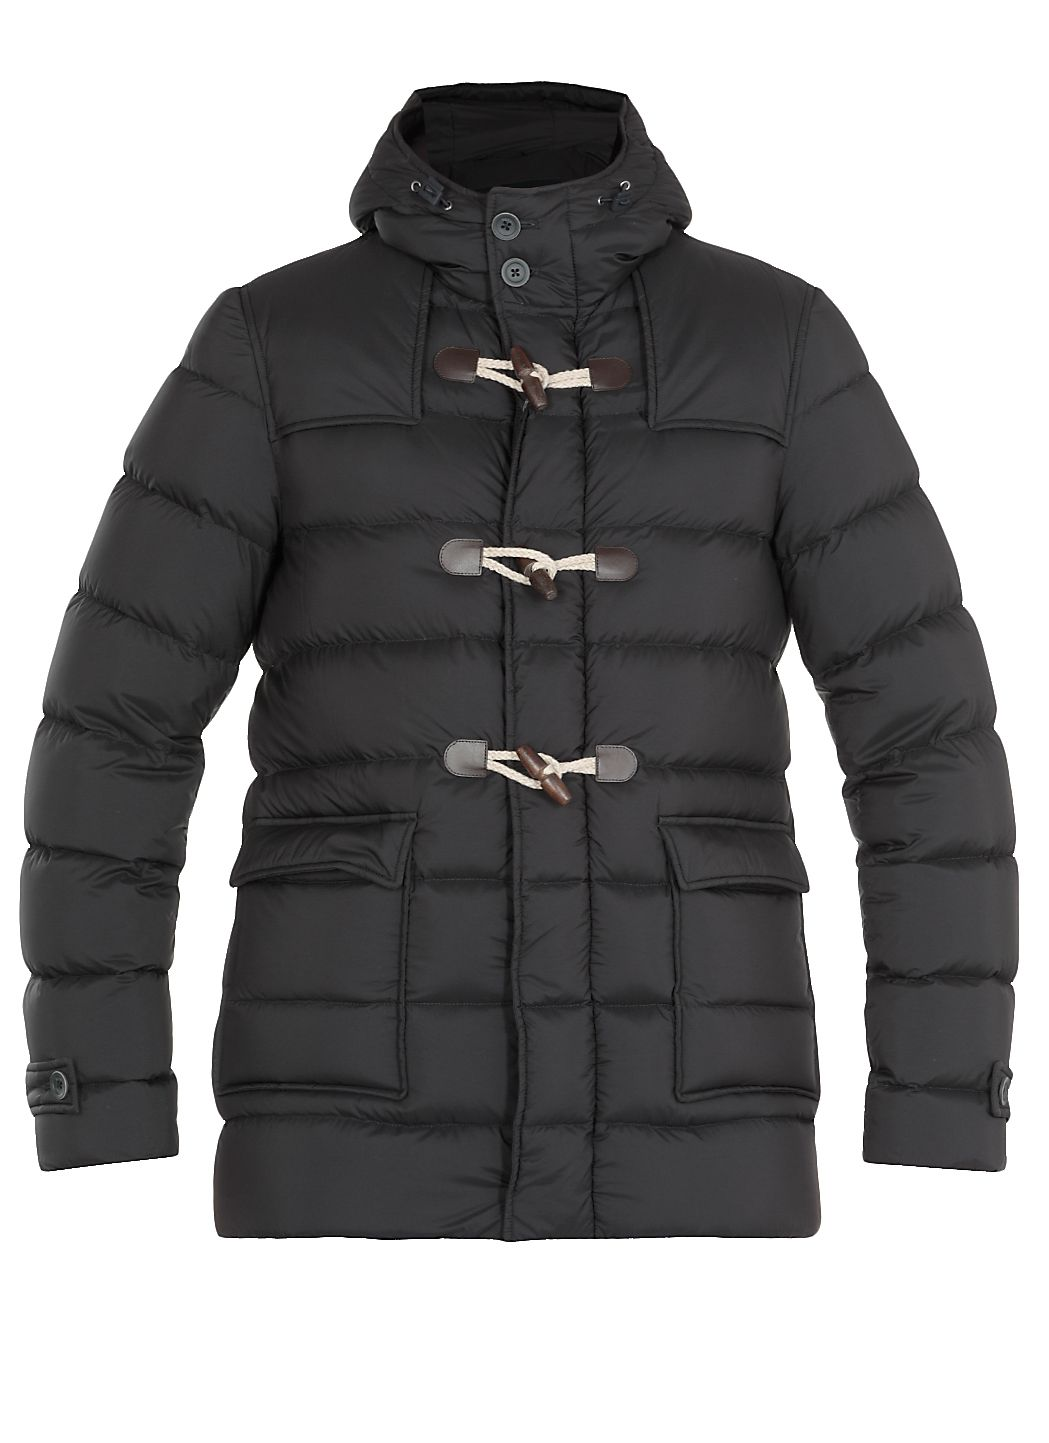 Padded and quilted down jacket